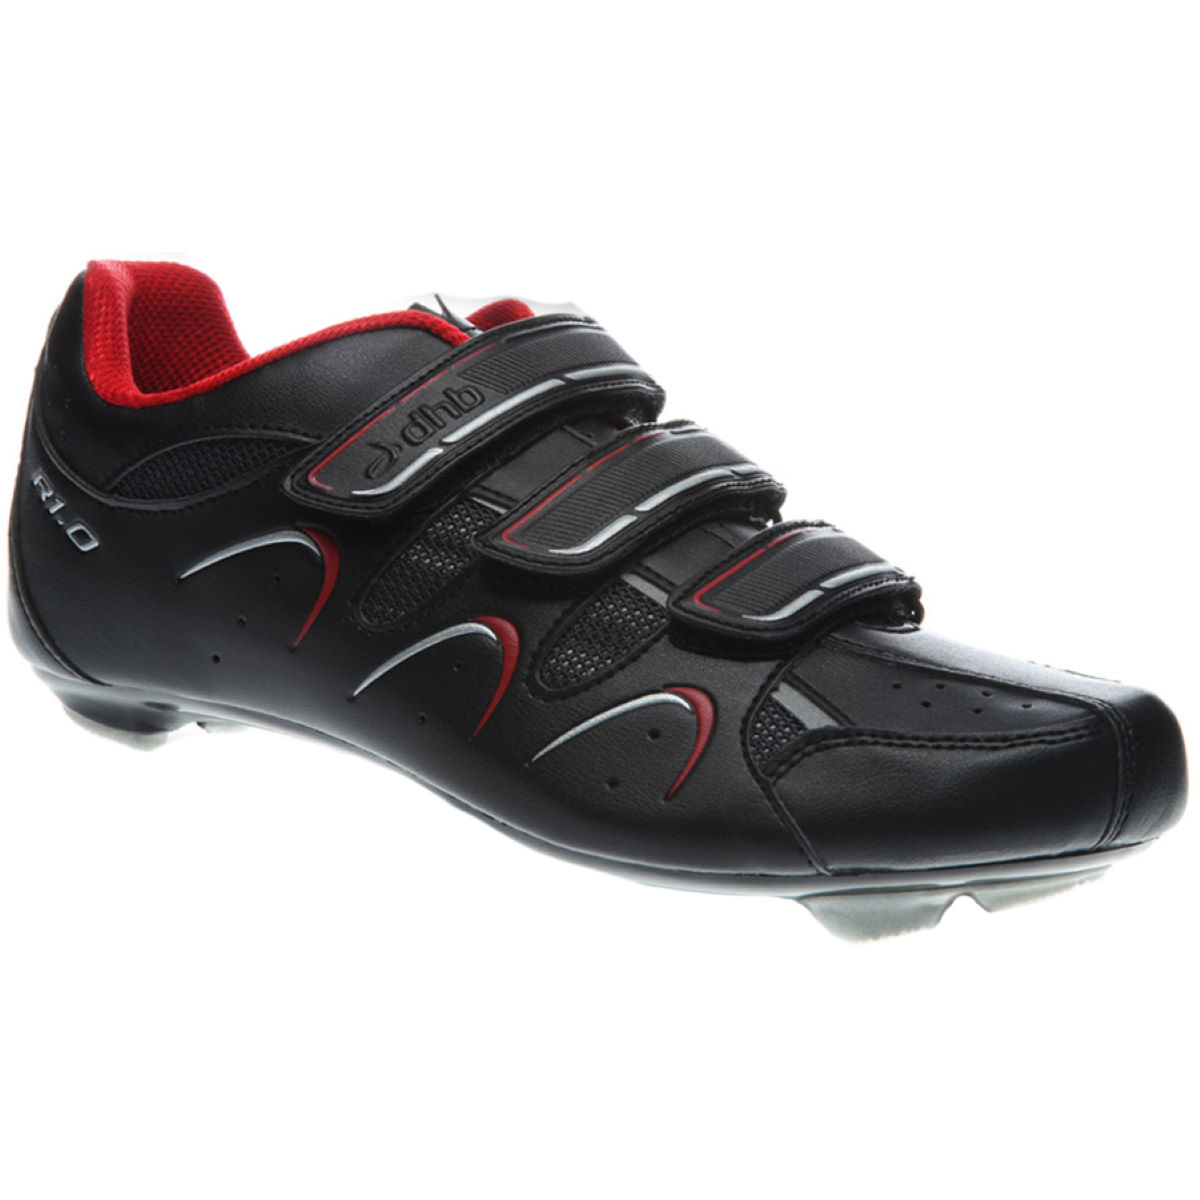 dhb R1.0 Road Cycling Shoe